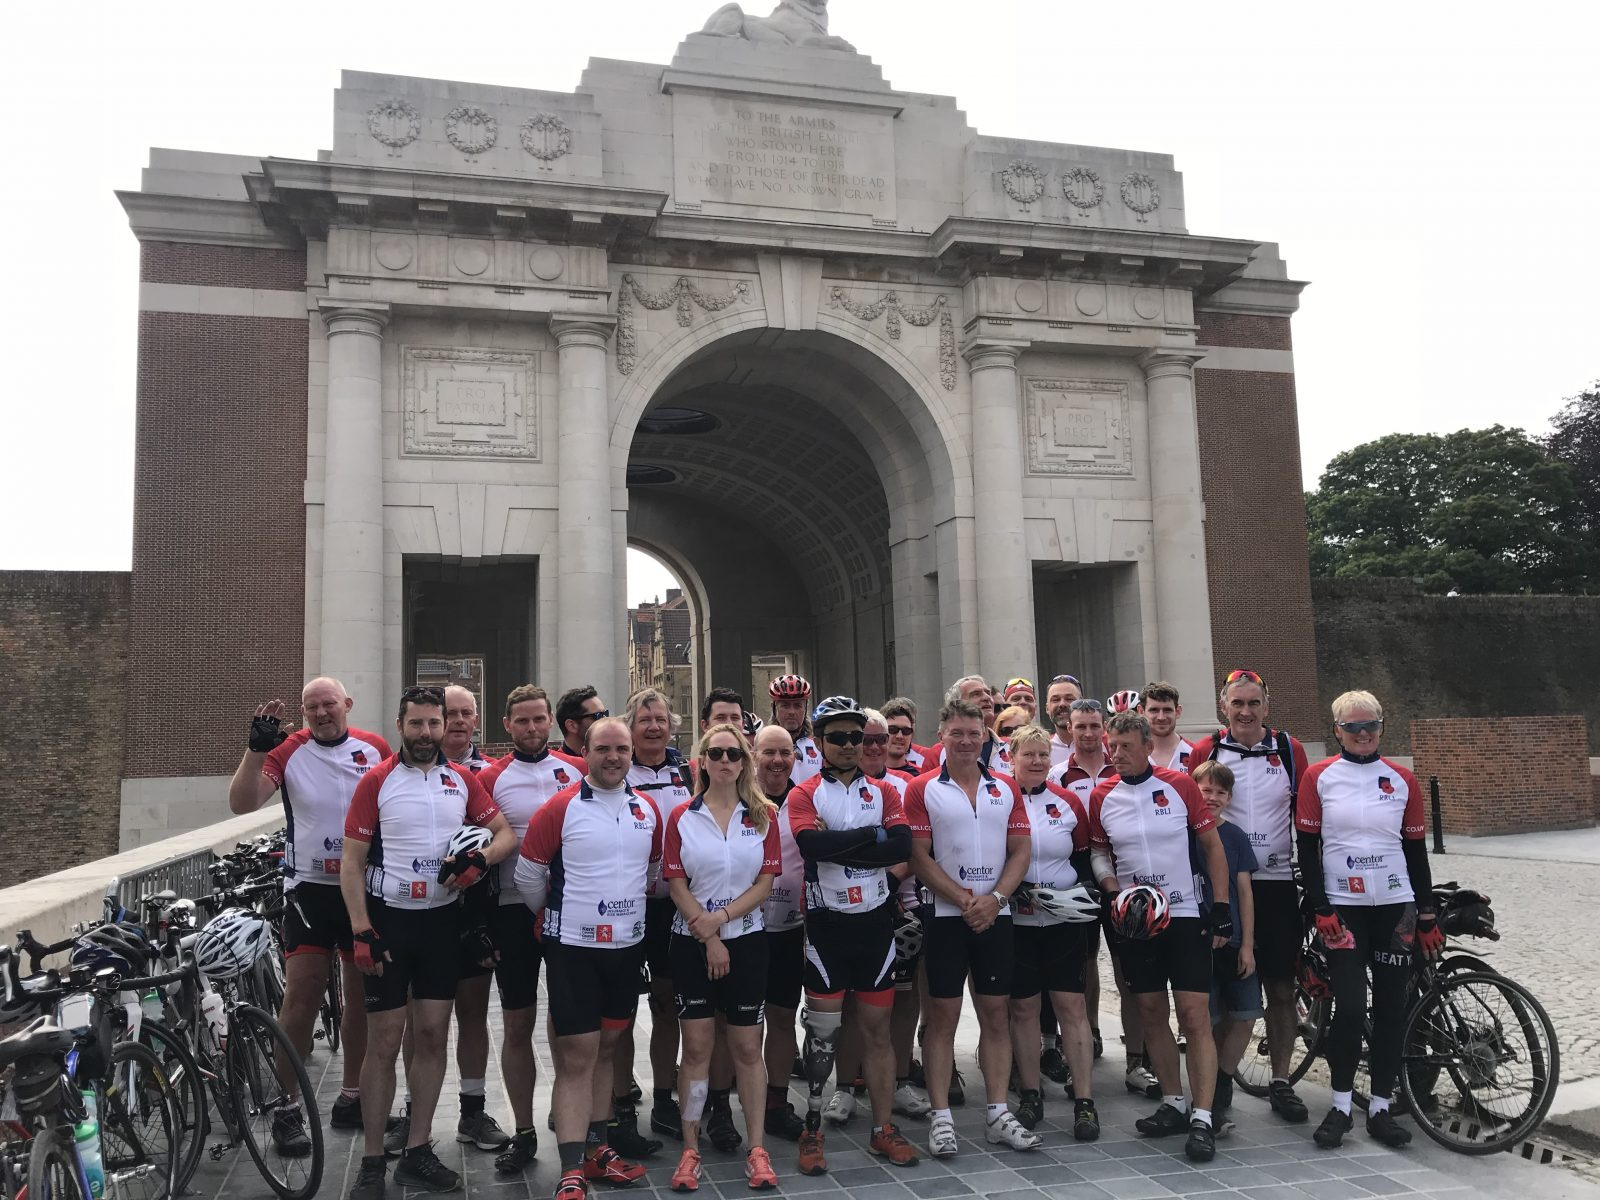 Injured war veterans help lead 150-mile cycle across Europe in WW1 remembrance for RBLI